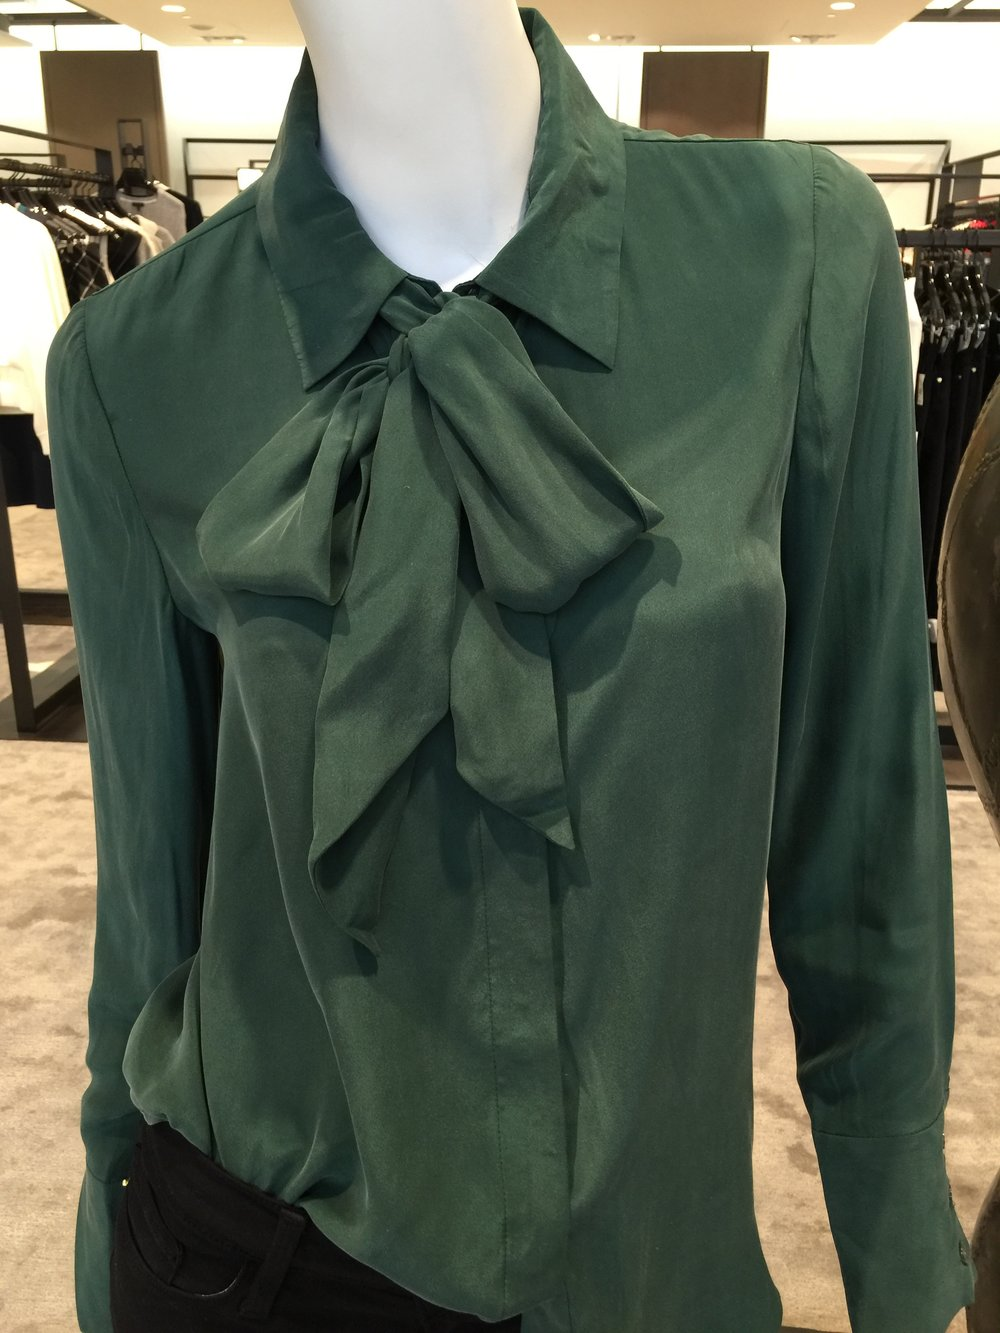 Blouses Color Green Chad Crowley Productions